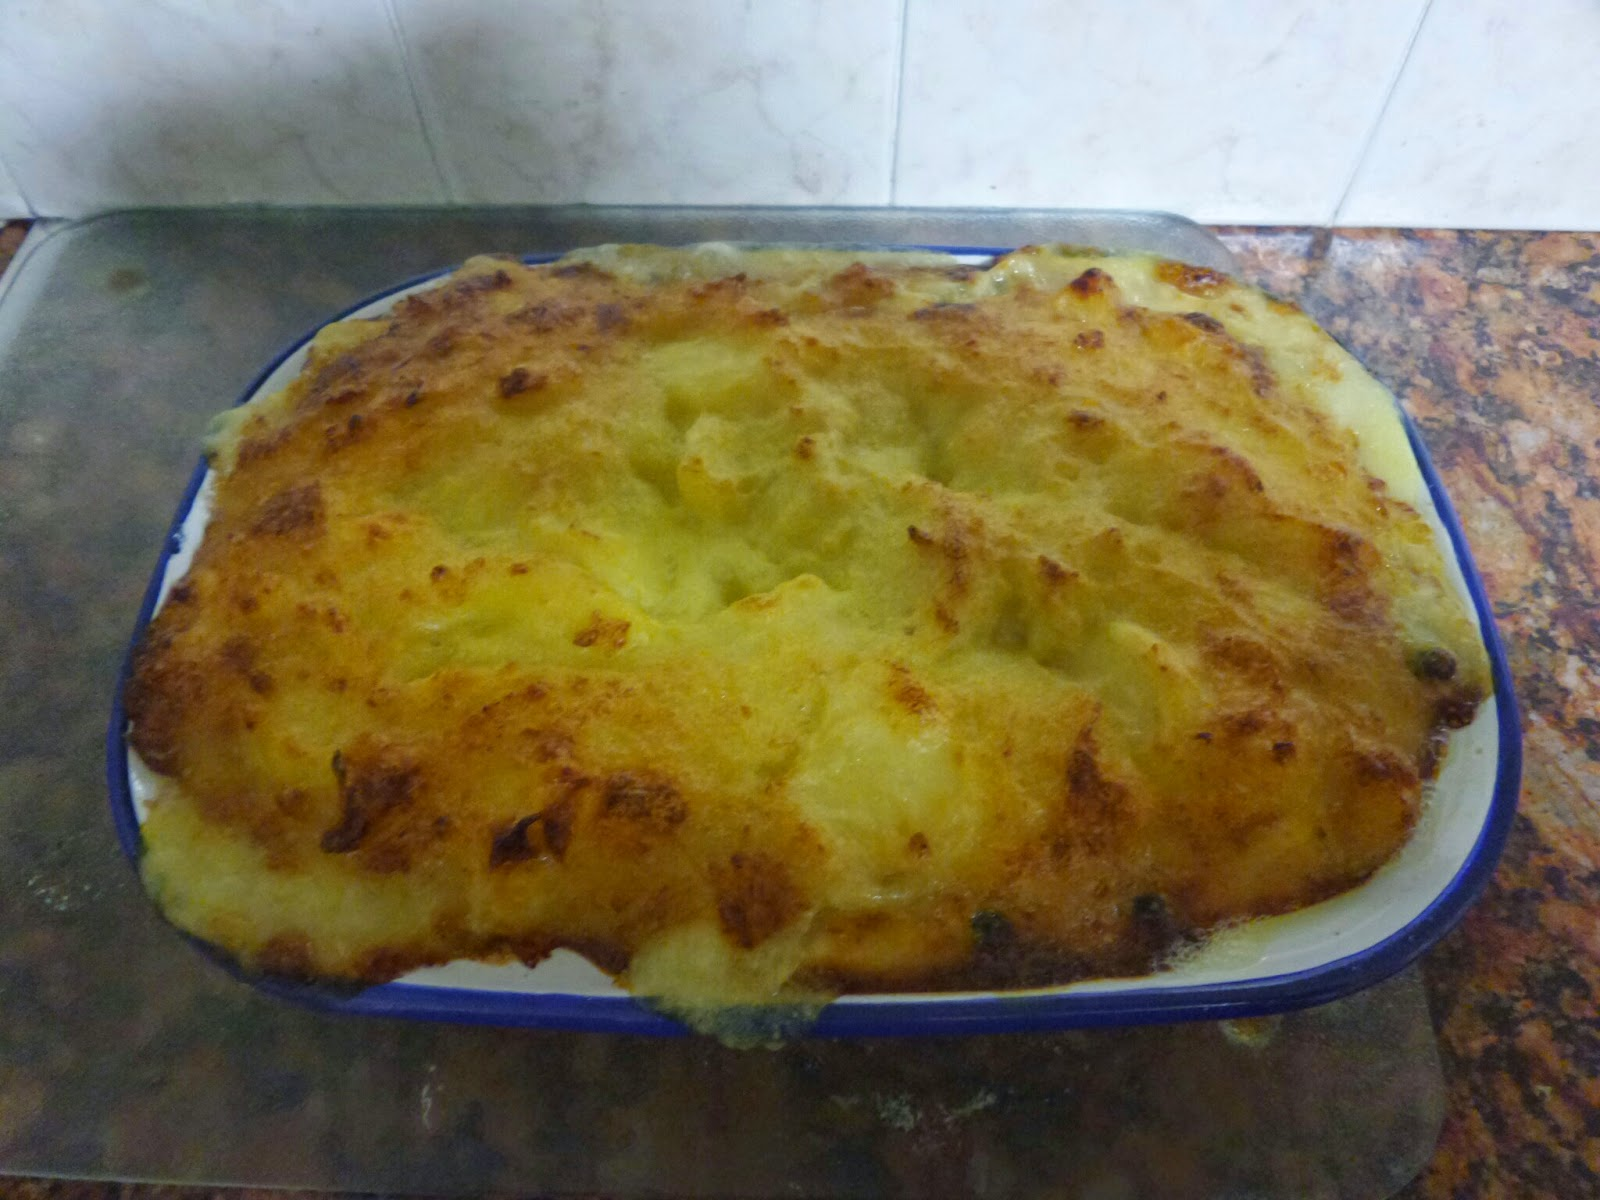 The best looking (and pretty good tasting) Fish Pie I have ever made and photographed!